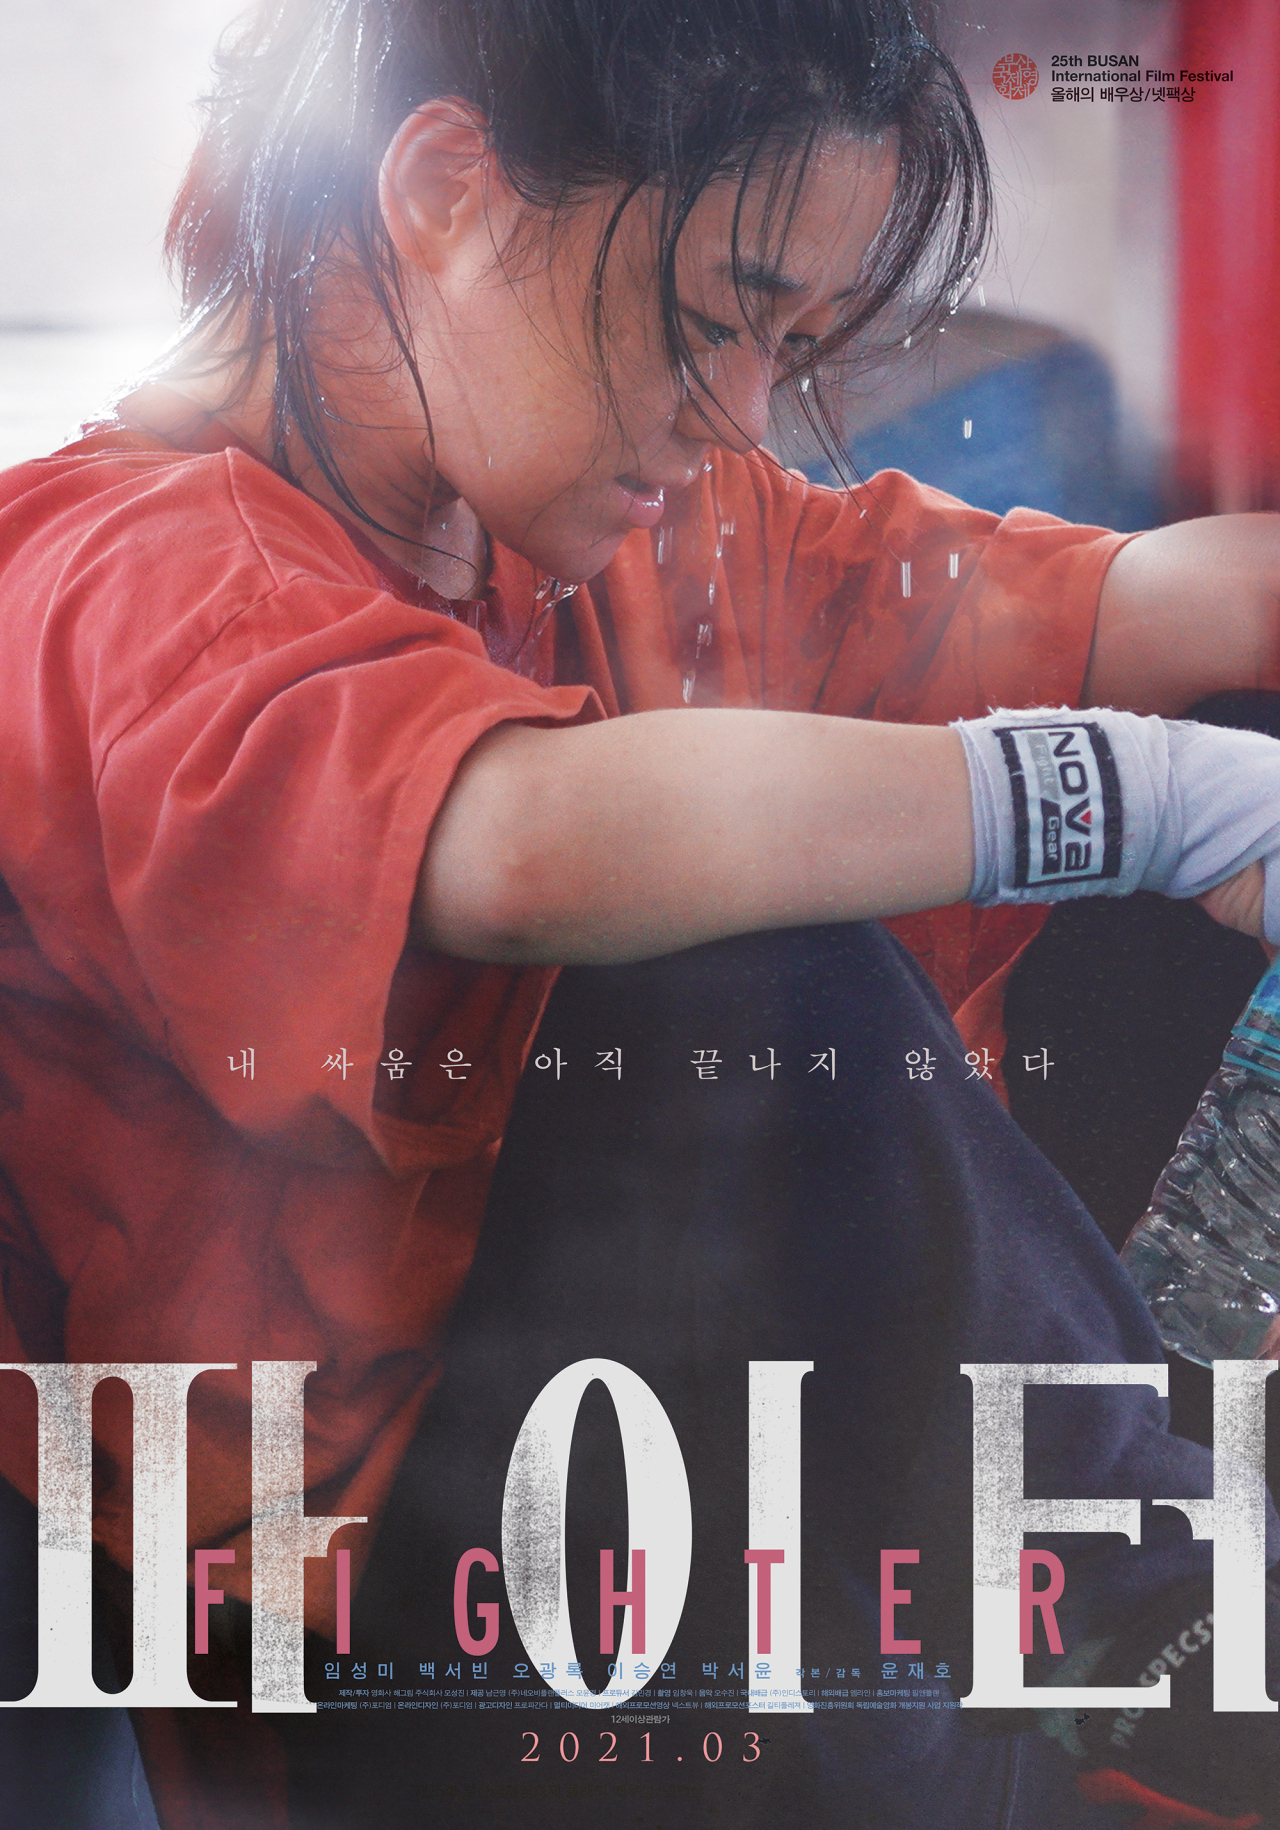 """Poster of """"Fighter"""" directed by Jero Yun (Indiestory)"""